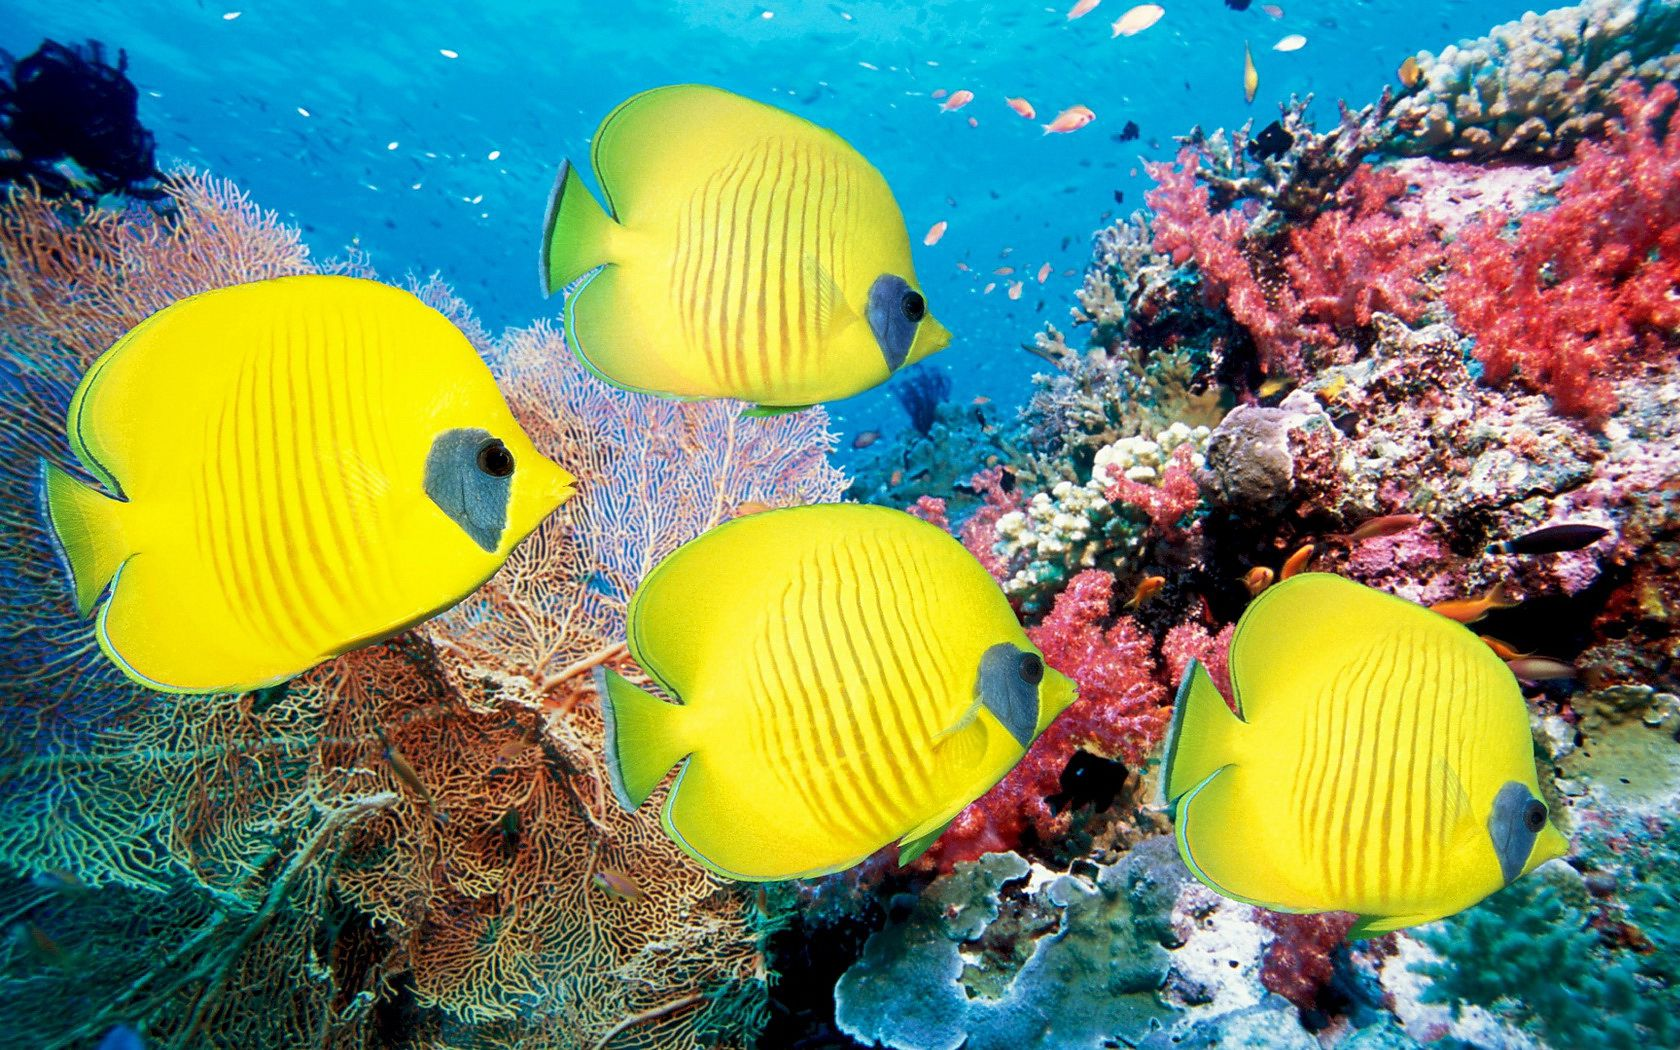 coral reef fish wallpaper 1680x1050 145656 wallpaperup